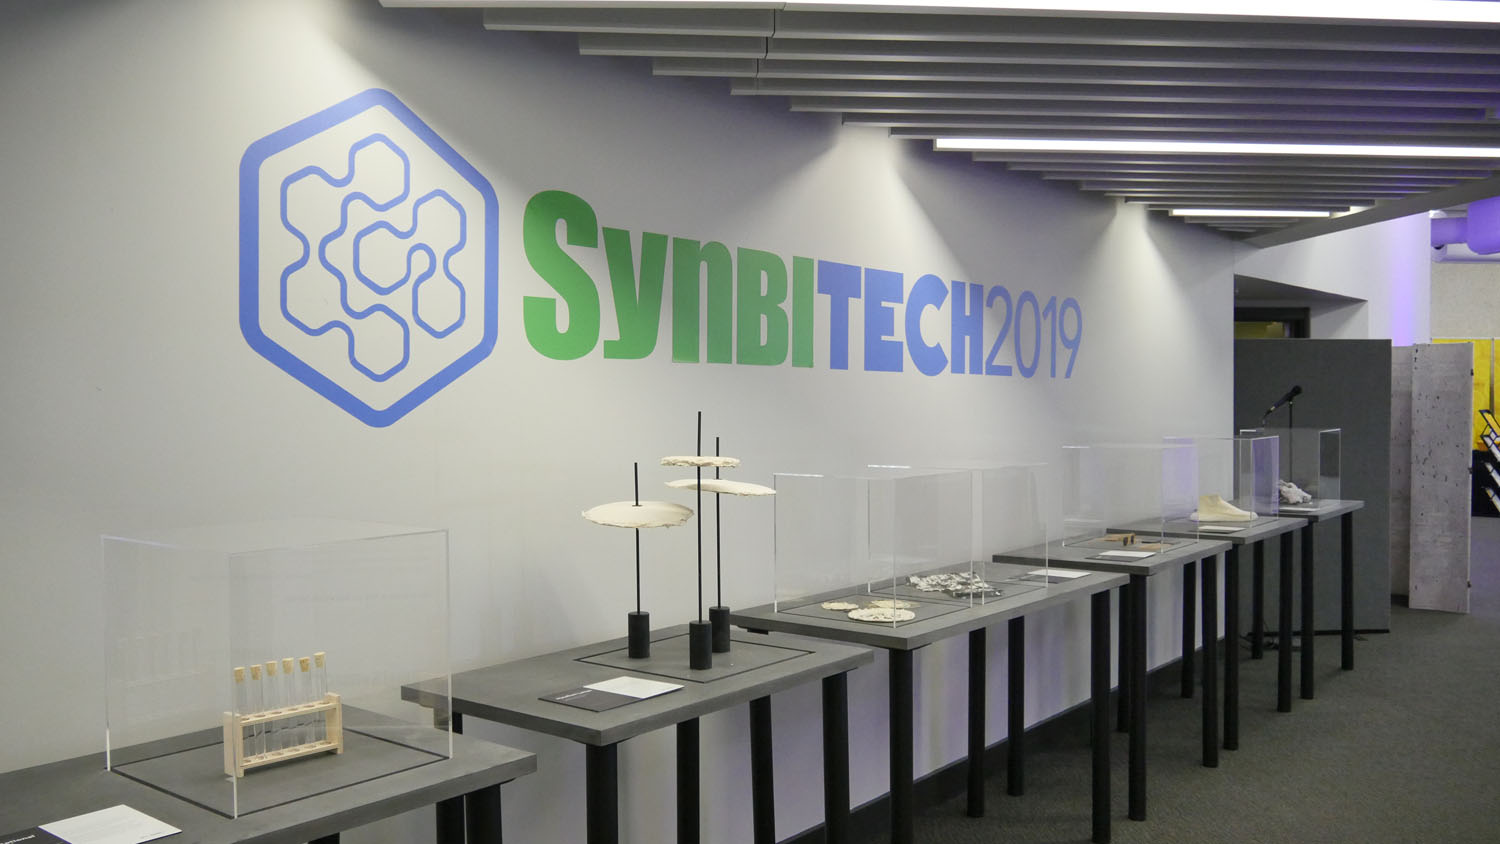 'Biodesign Here Now' exhibition at SynbiTECH 2019, showcasing 17 selected projects to illustrate what the field of Biodesign will be able to contribute - from sustainable pollination to grown fashion to personal diagnostics.